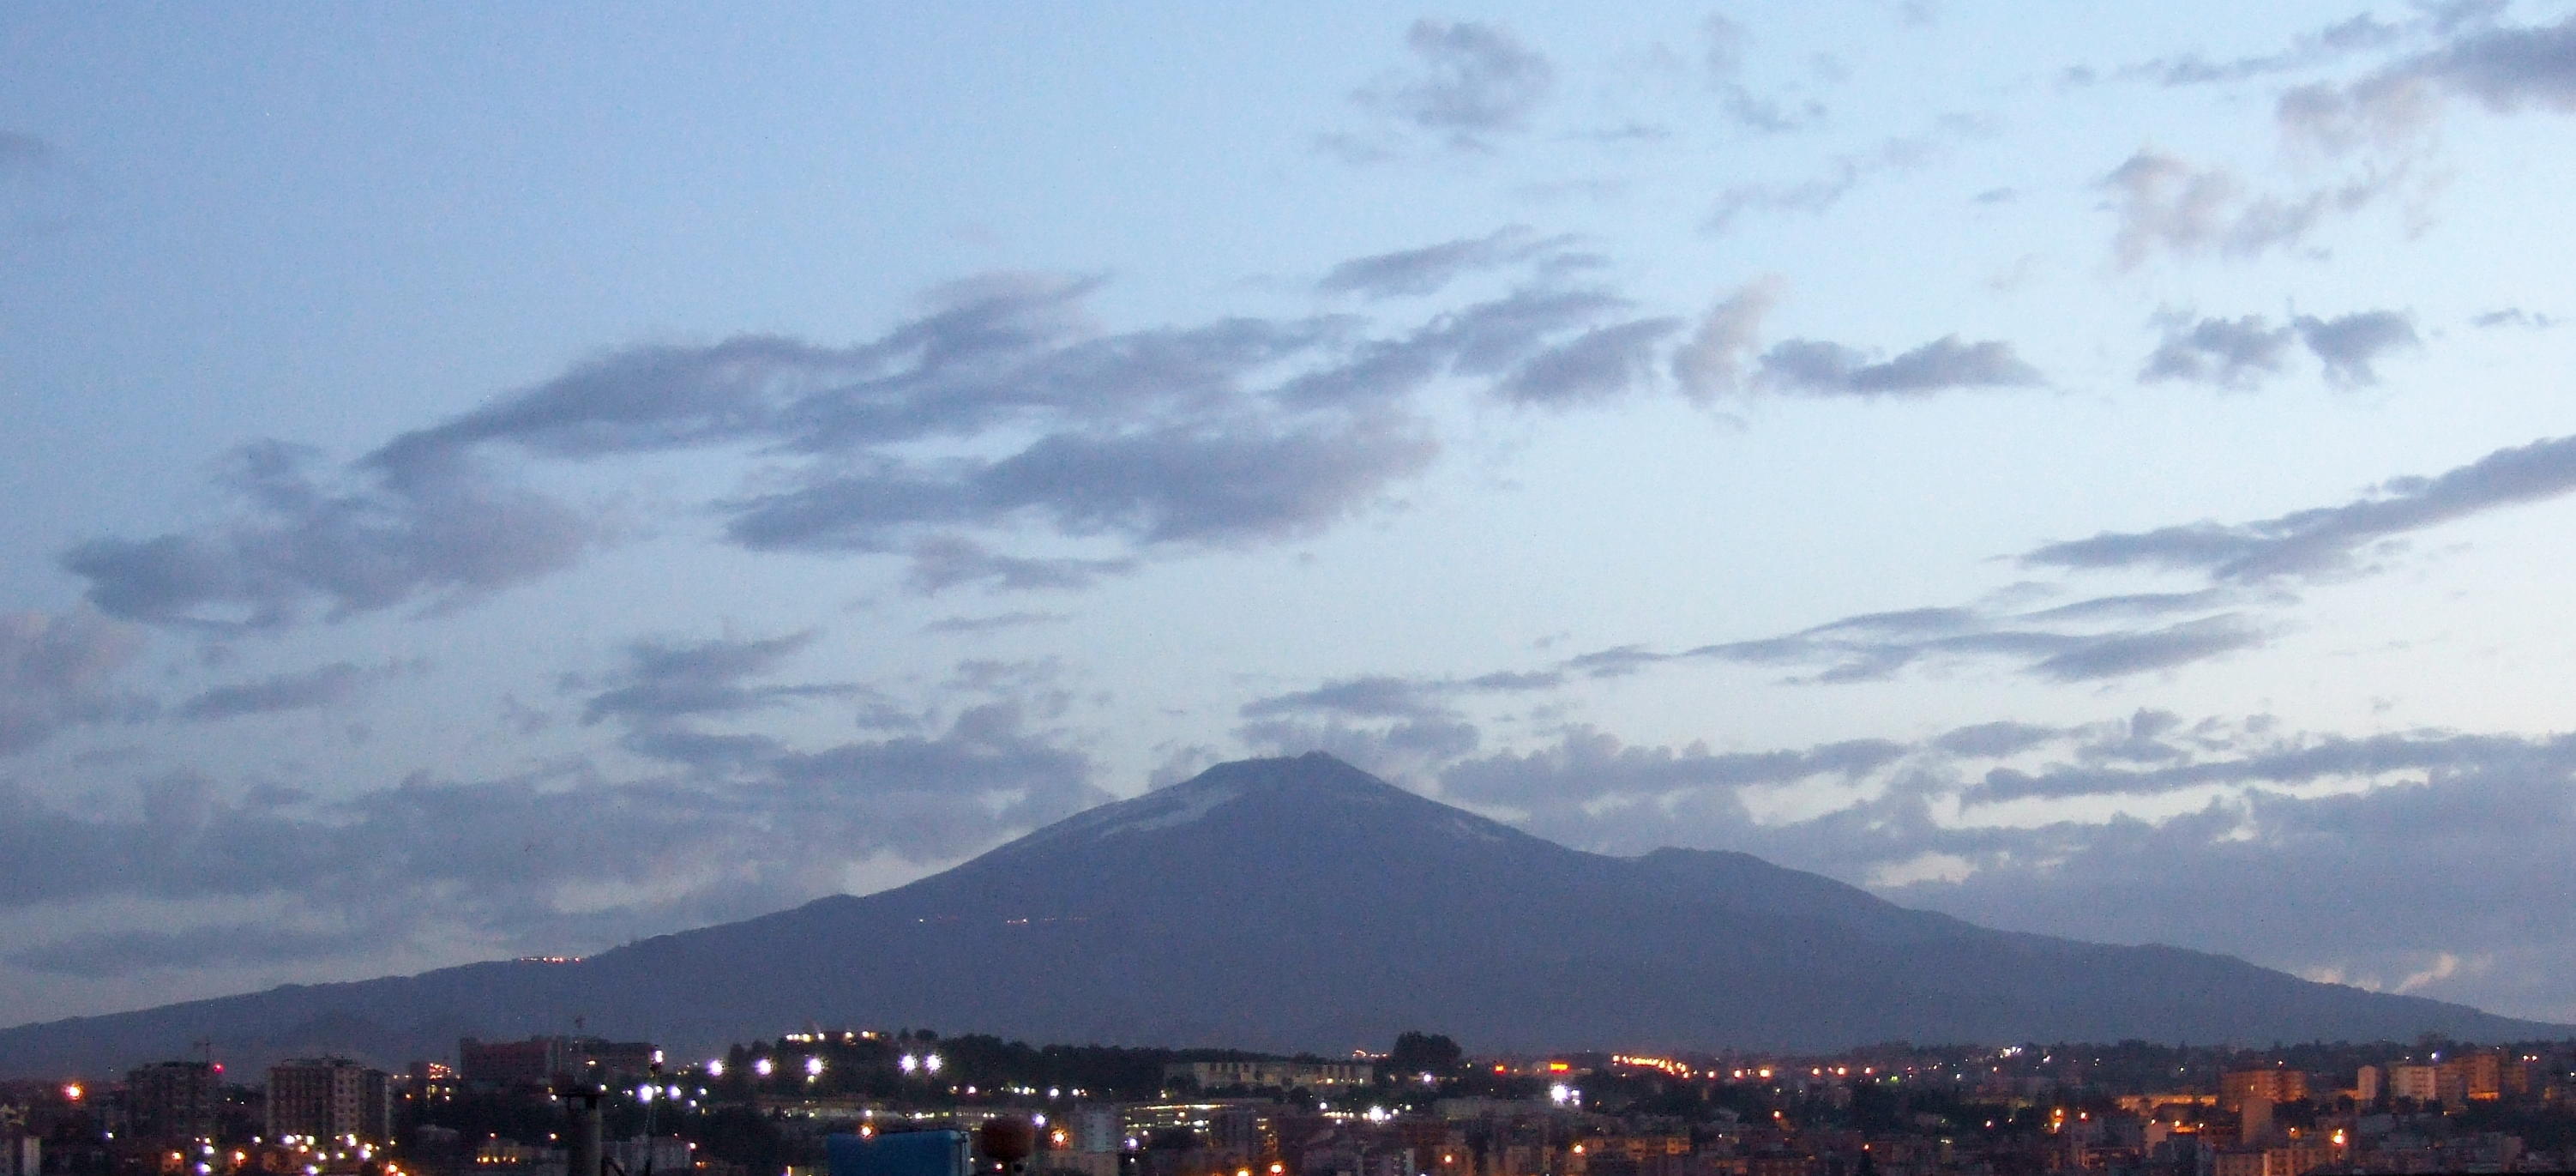 Etna at Dawn Catania-Italy - Creative Commons by gnuckx, Bebo, Picture, Metacafe, Mountain, HQ Photo